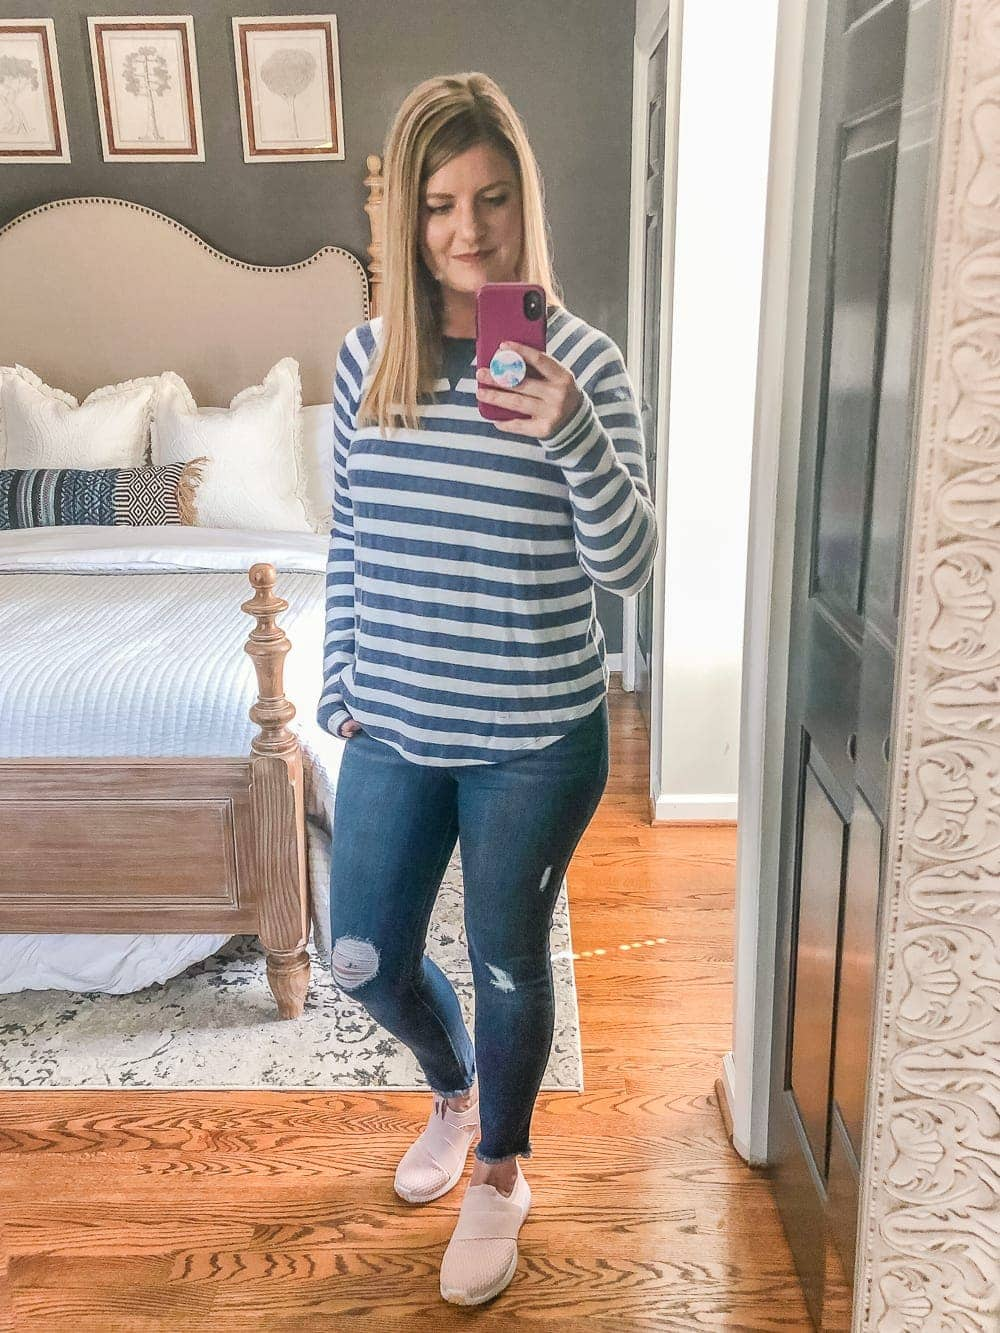 7 Inexpensive Tummy Hiding Mom Friendly Fall Outfits - Pullover shirt, distressed jeans, and slip-on sneakers